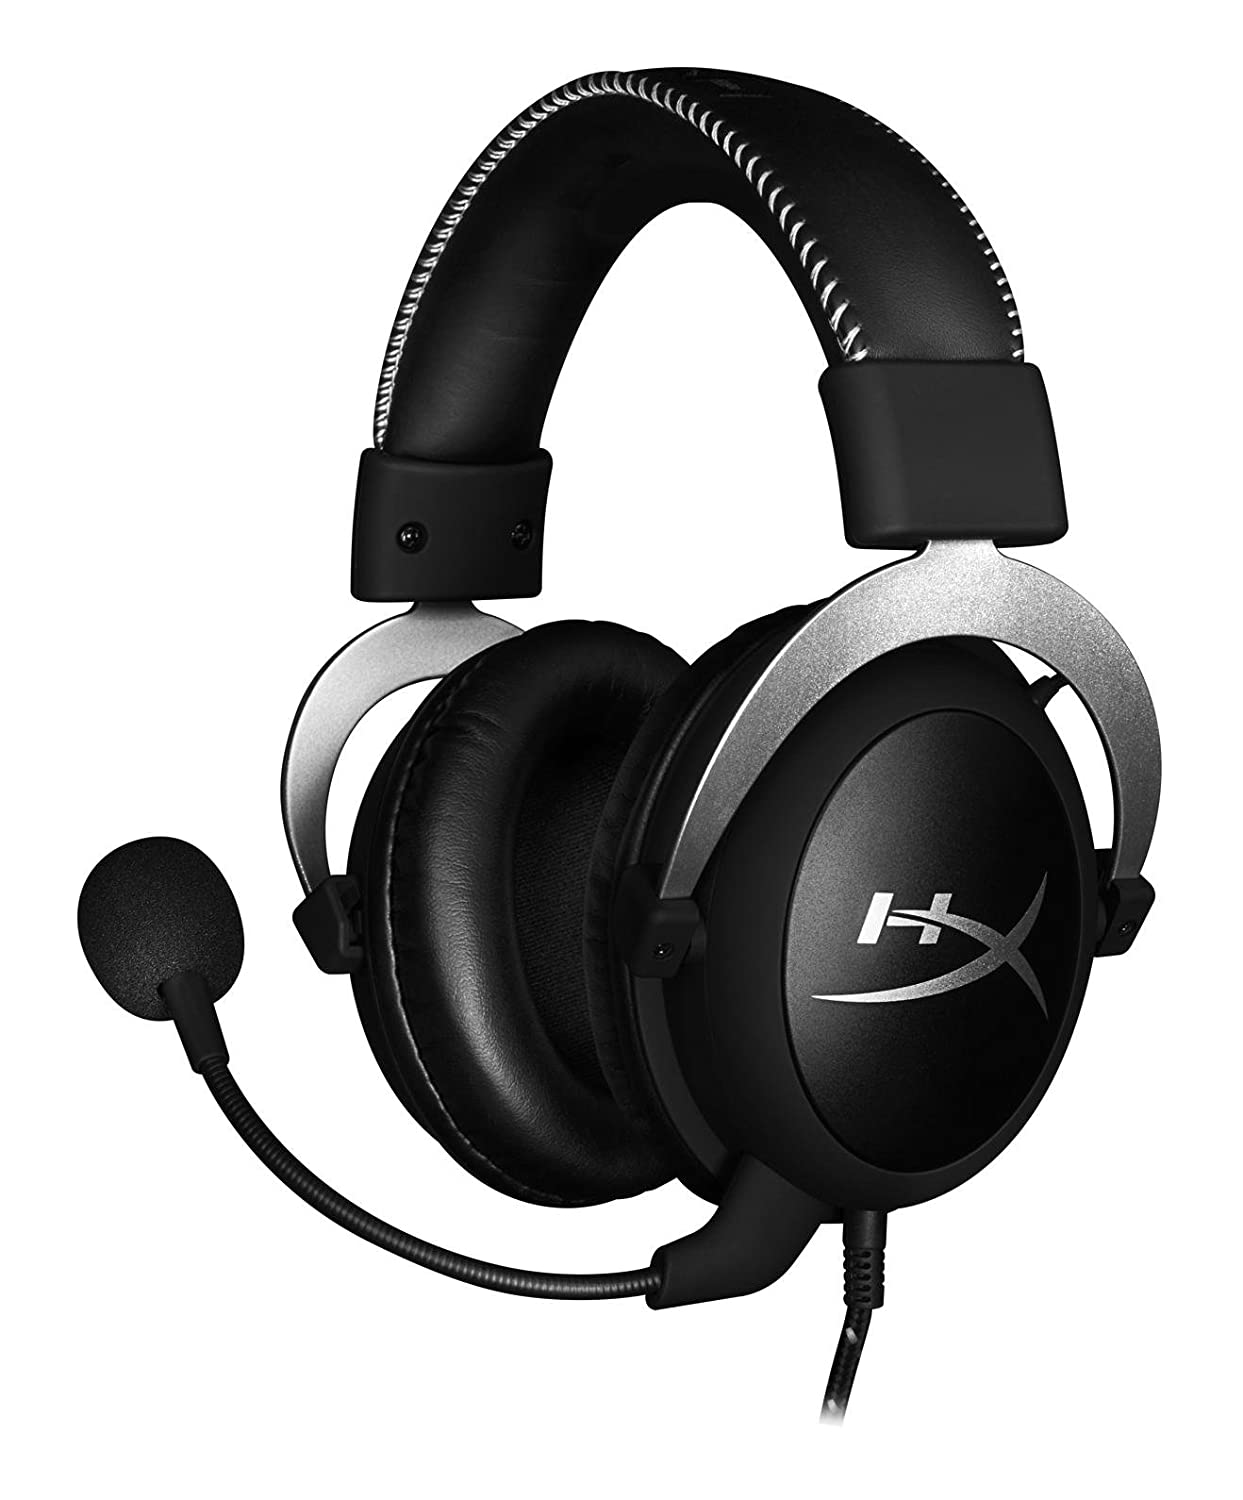 Amazon.com: HyperX CloudX Pro Gaming Headset for Xbox One/PC (HX ...